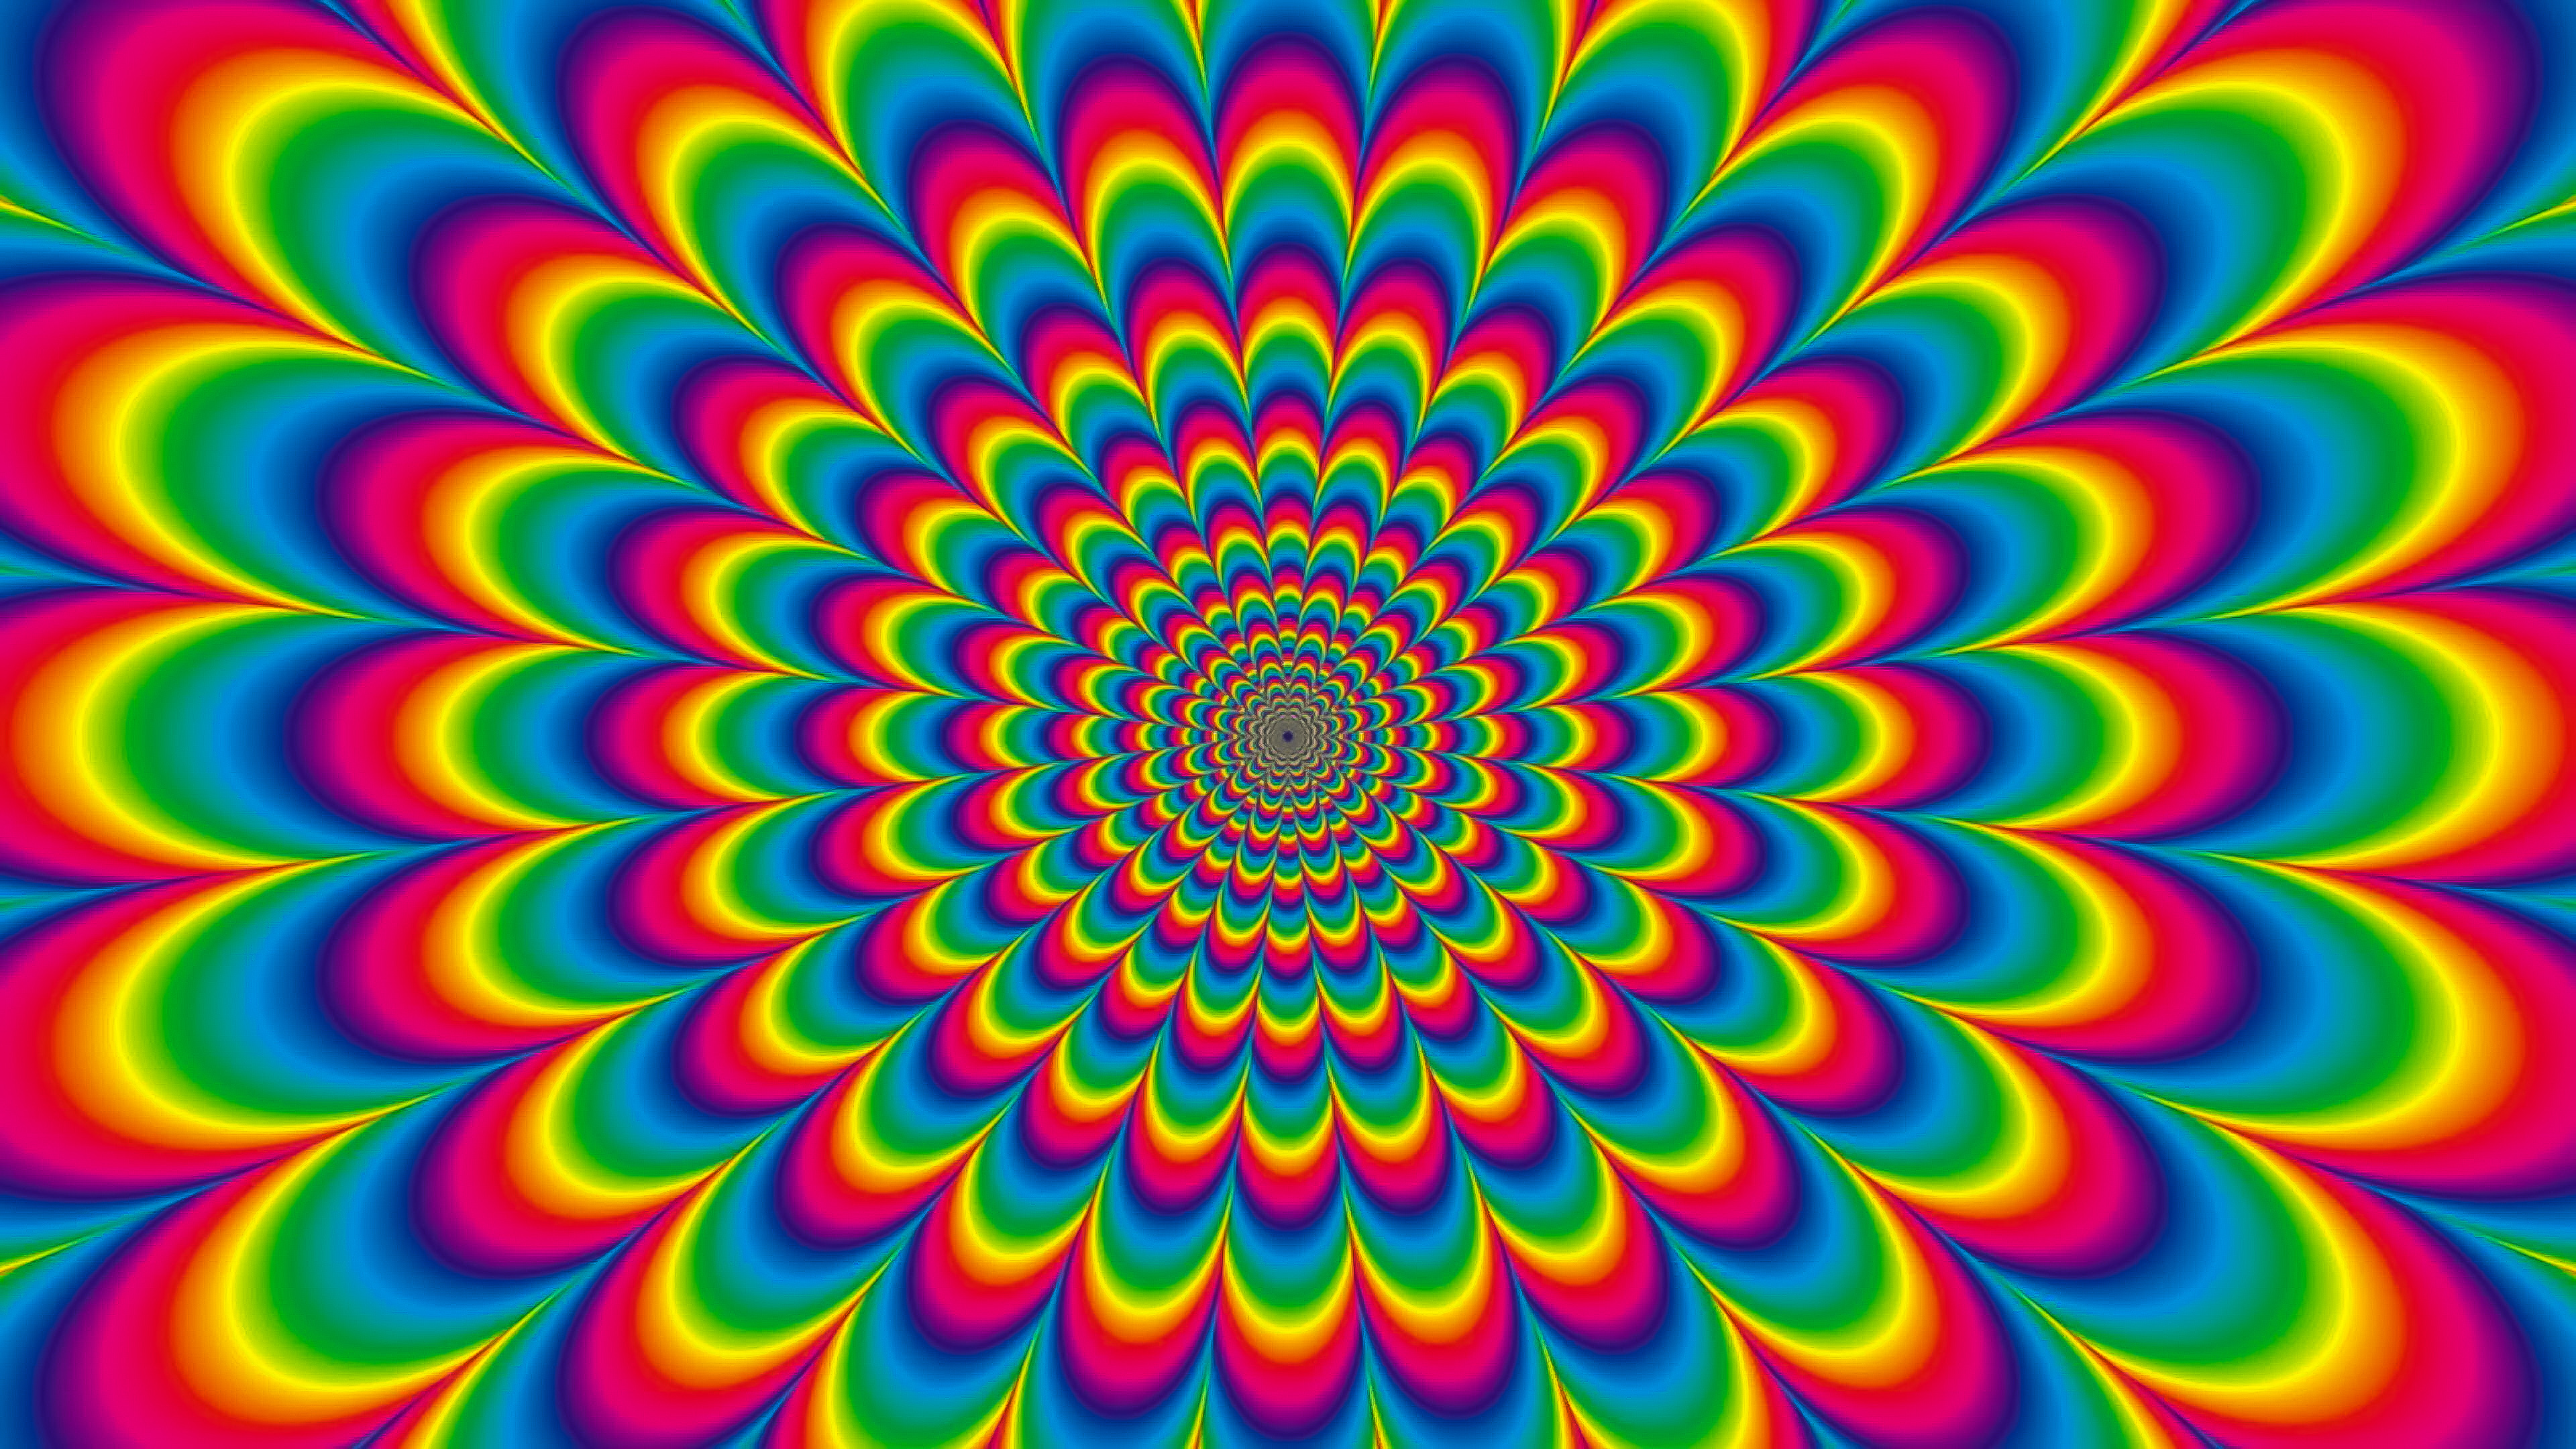 Look At This On Lsd 176285 Hd Wallpaper Backgrounds Download